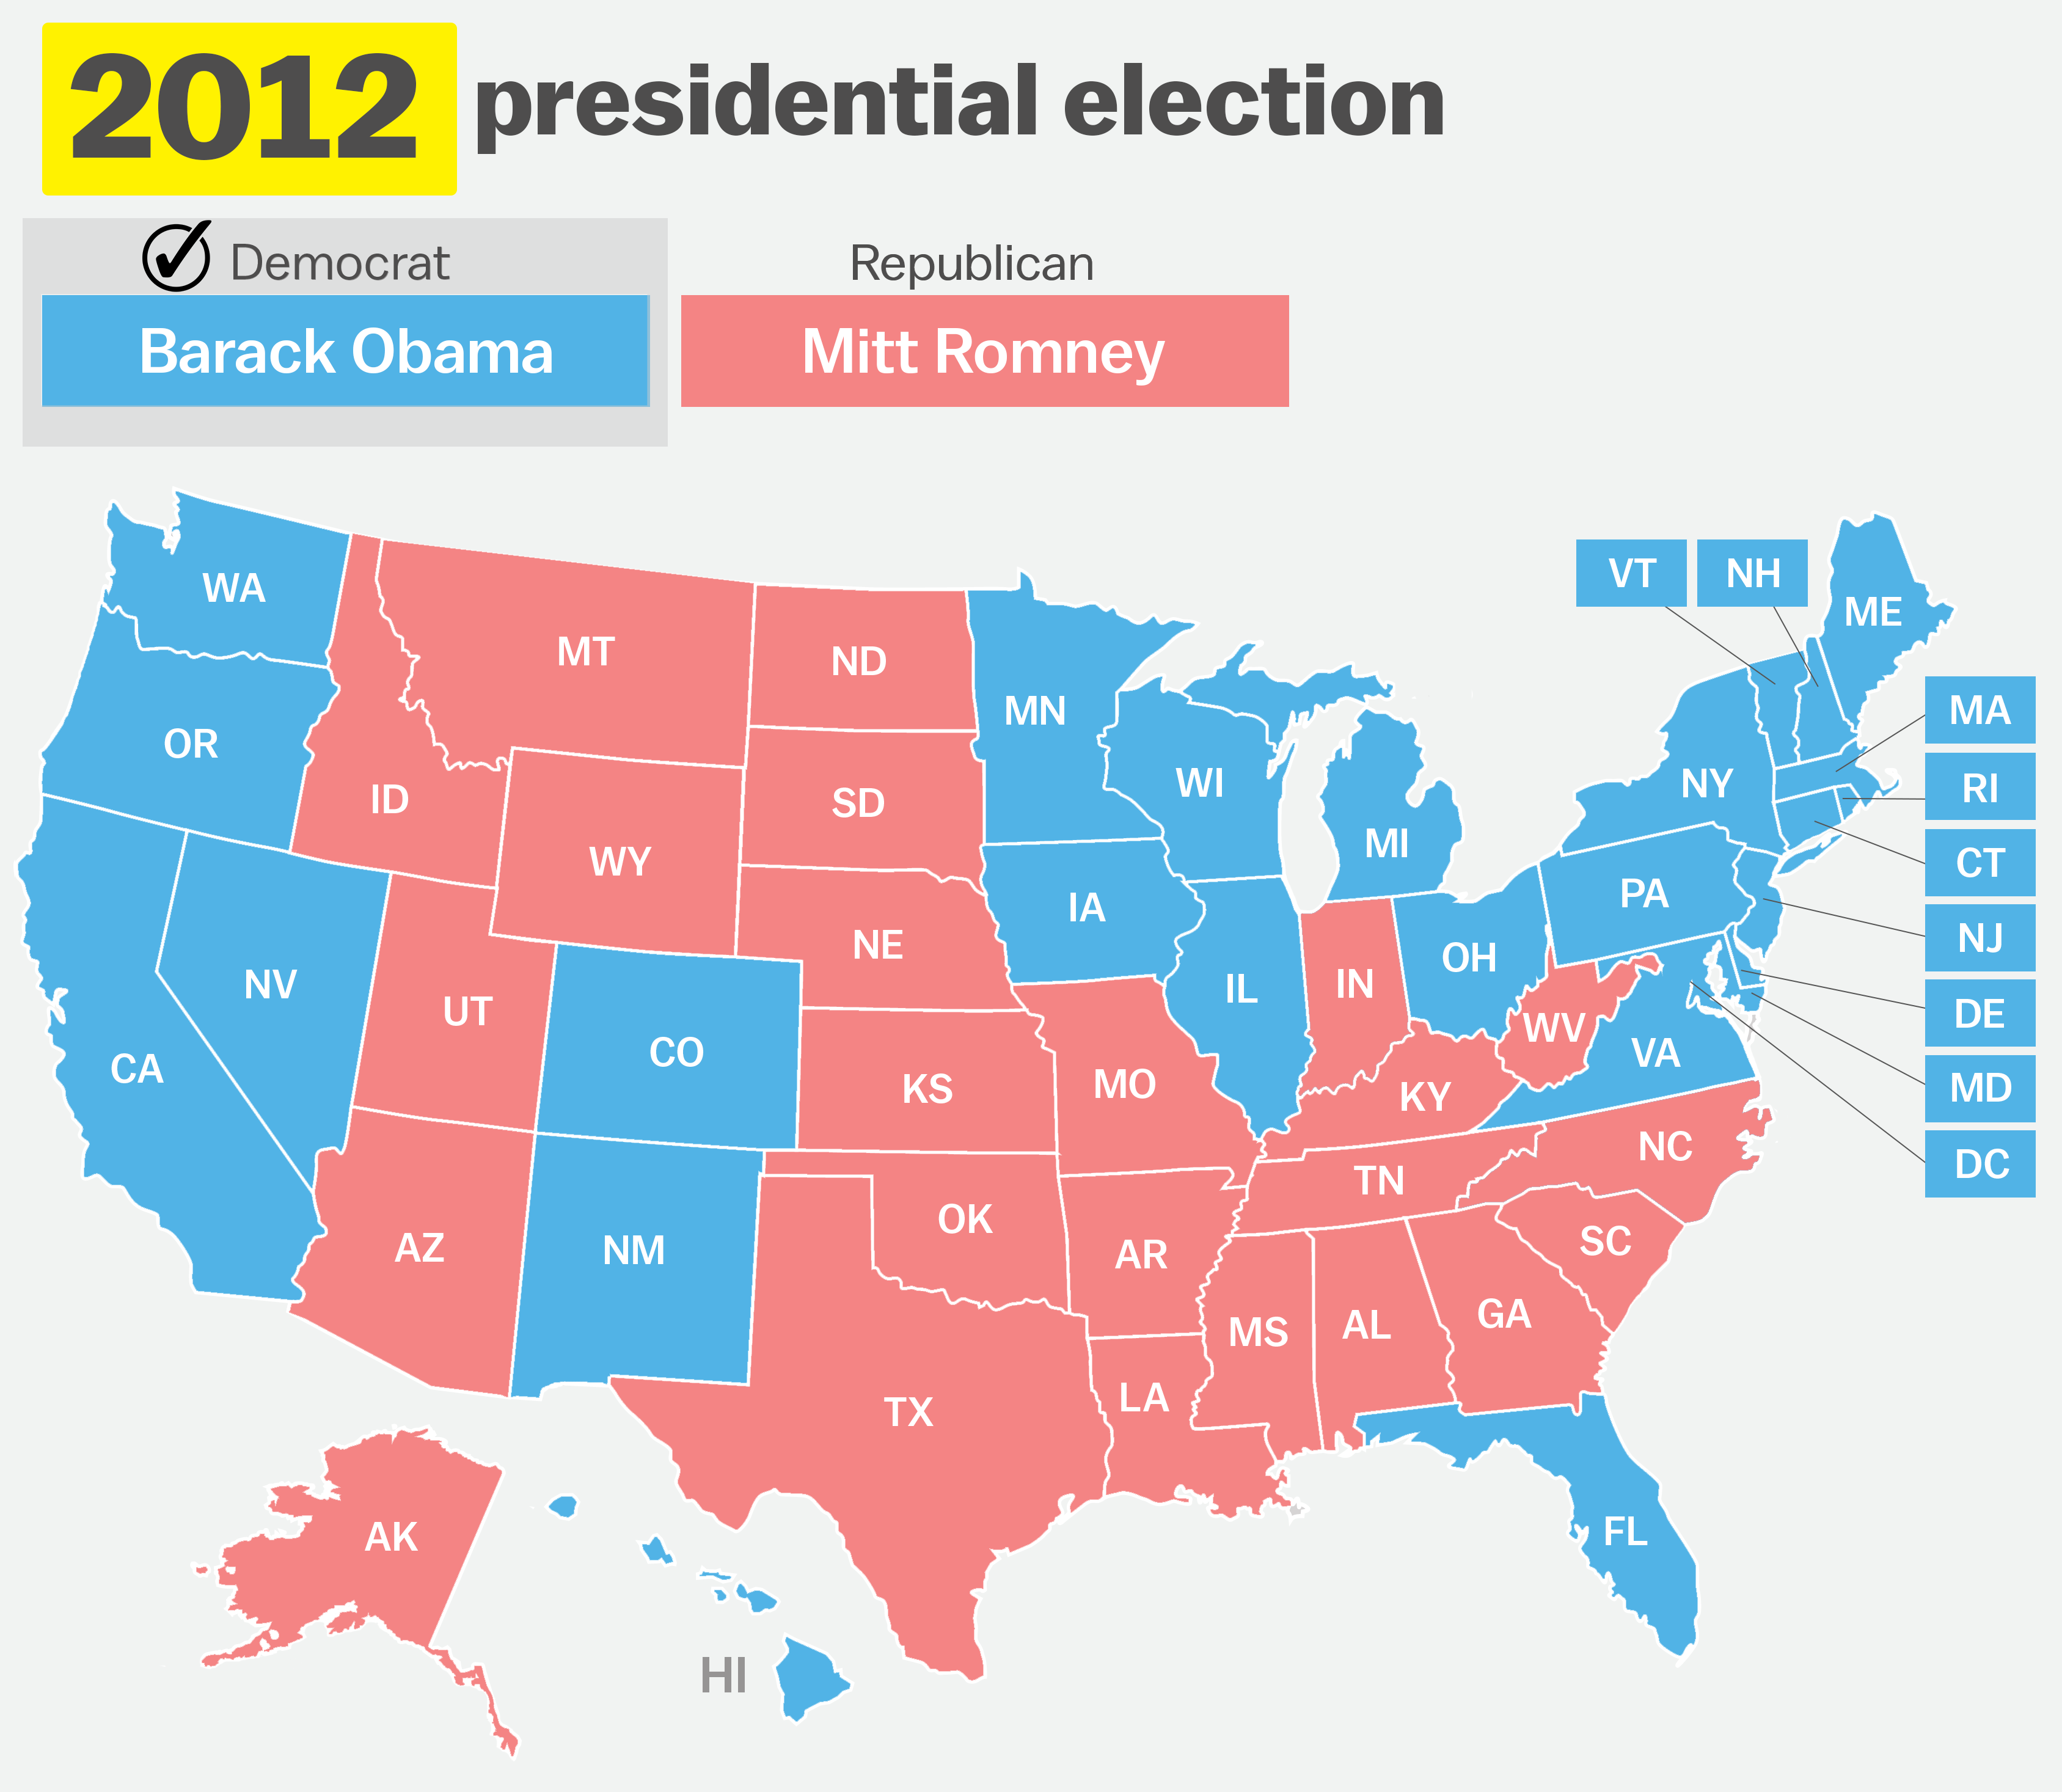 How Has Your State Voted In The Past Elections Vox - Us presidential election 2012 map